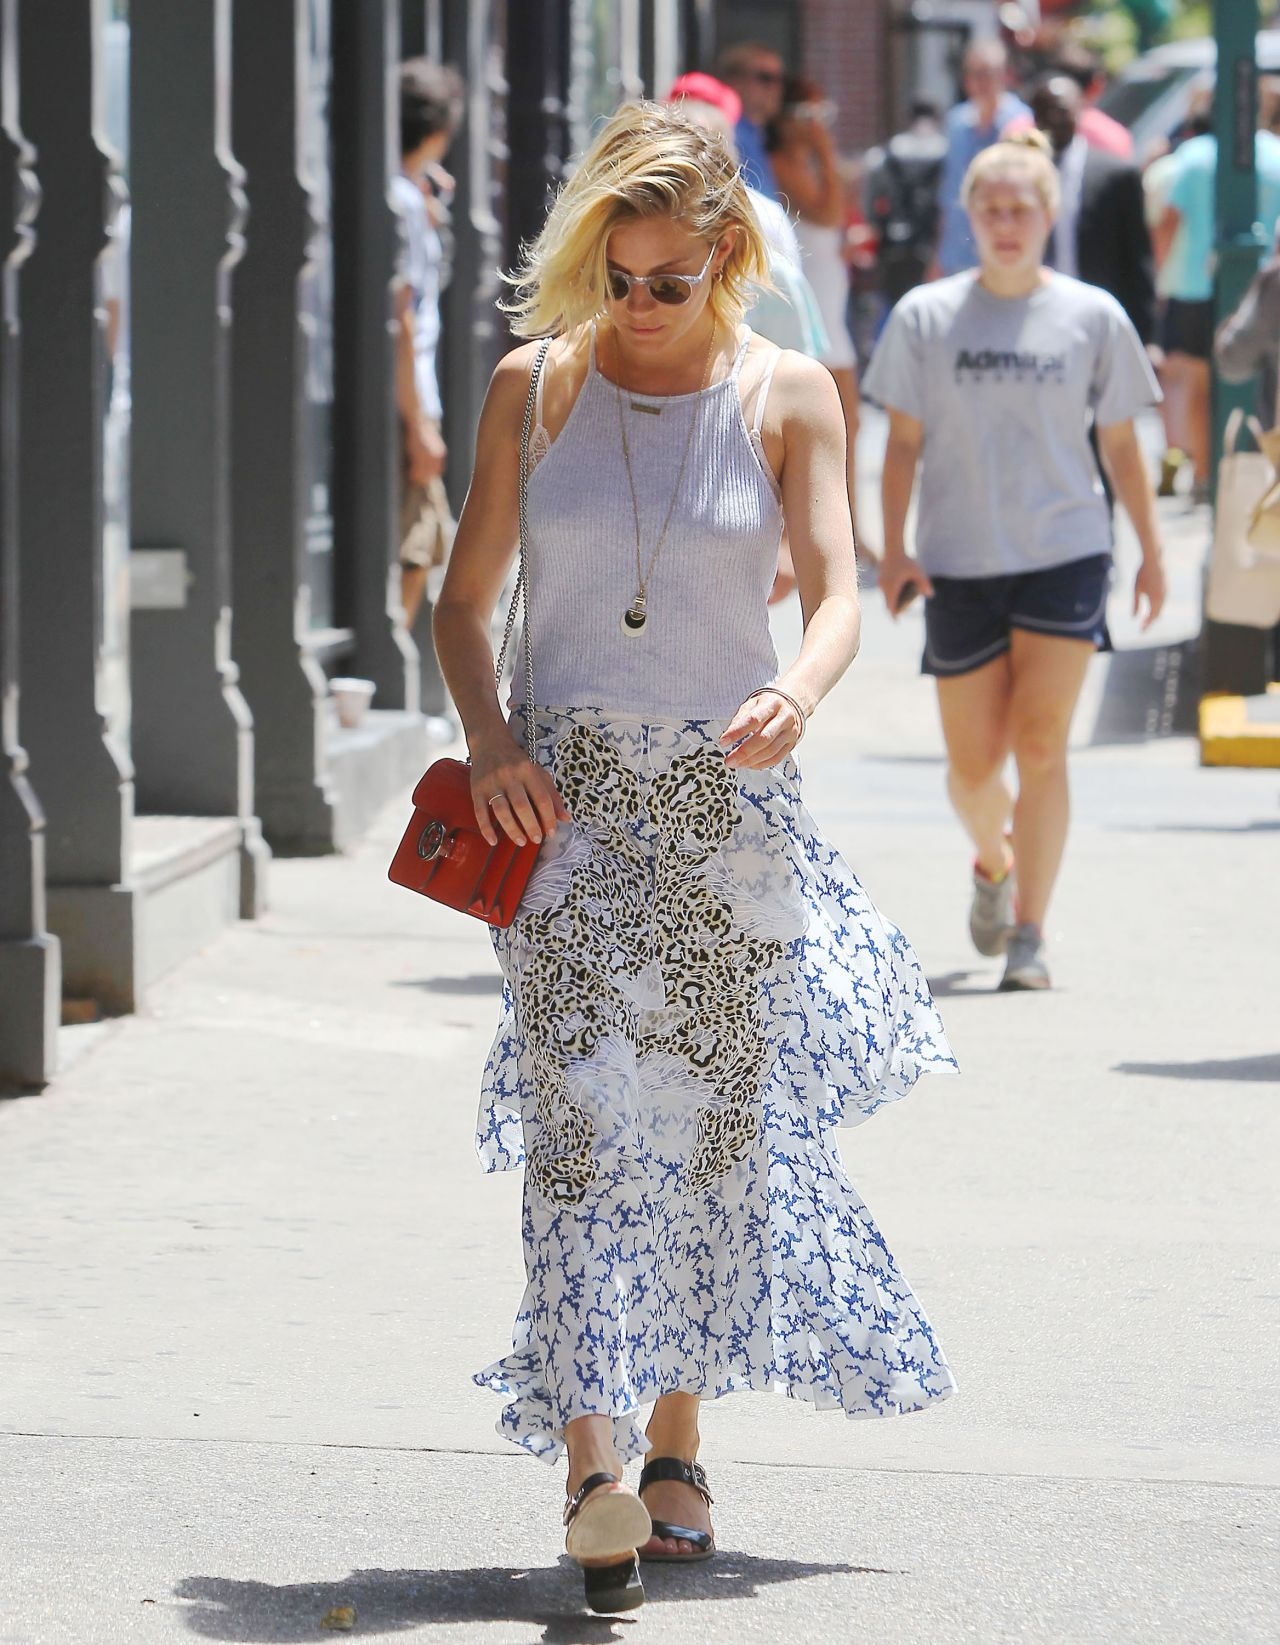 sienna-miller-summer-style-out-in-soho-nyc-july-2015_11